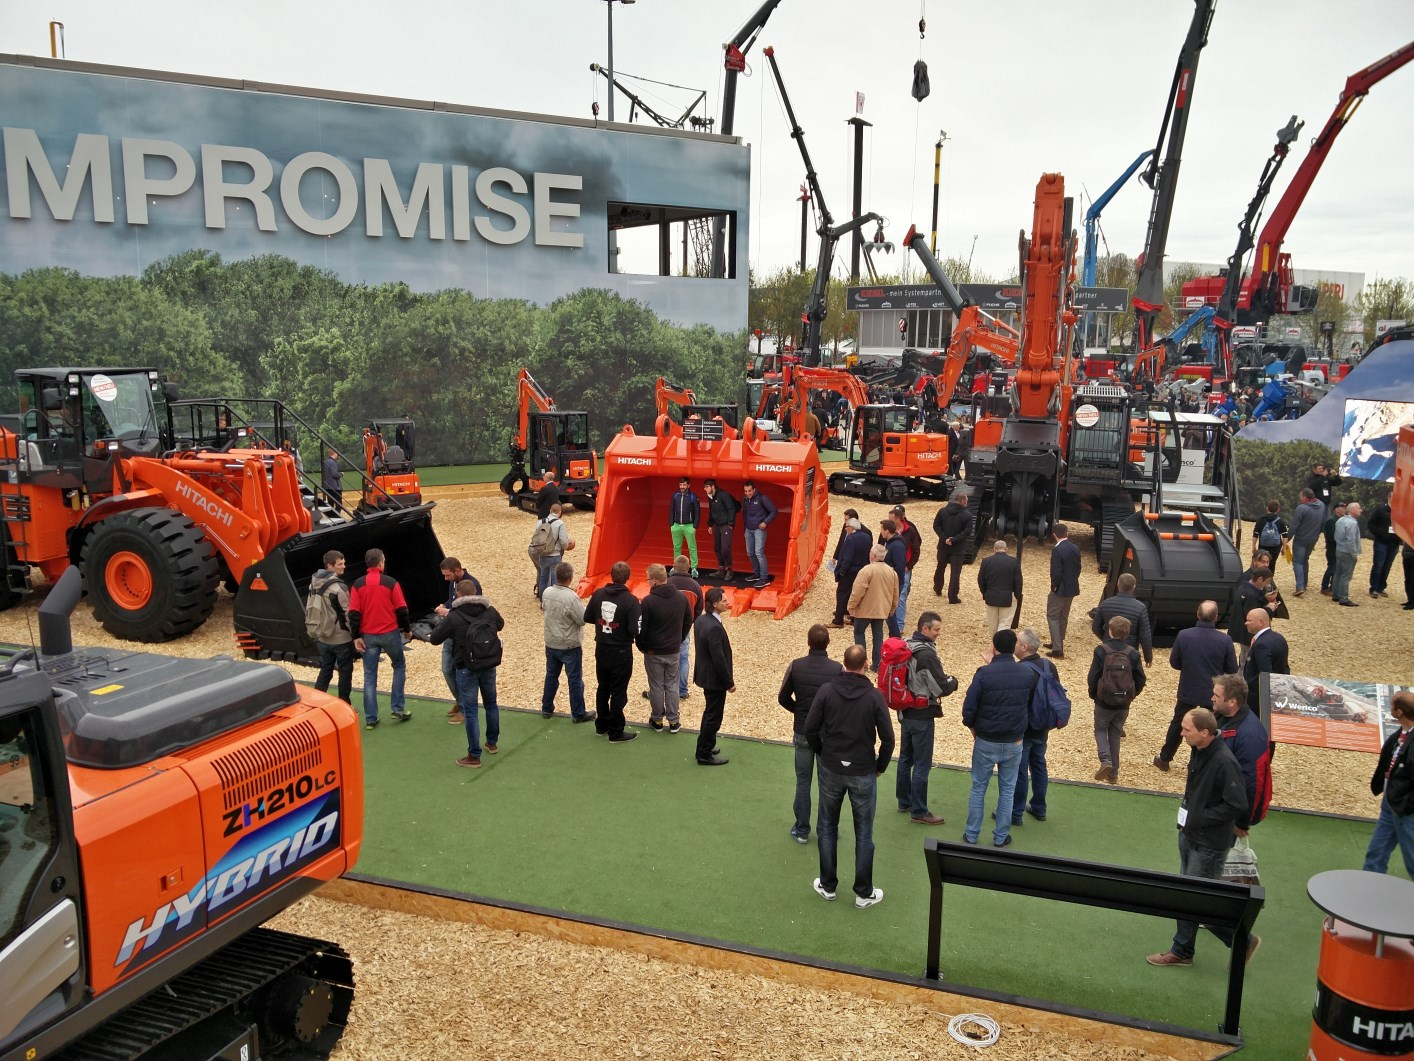 bauma-2016-Hitachi-Messestand